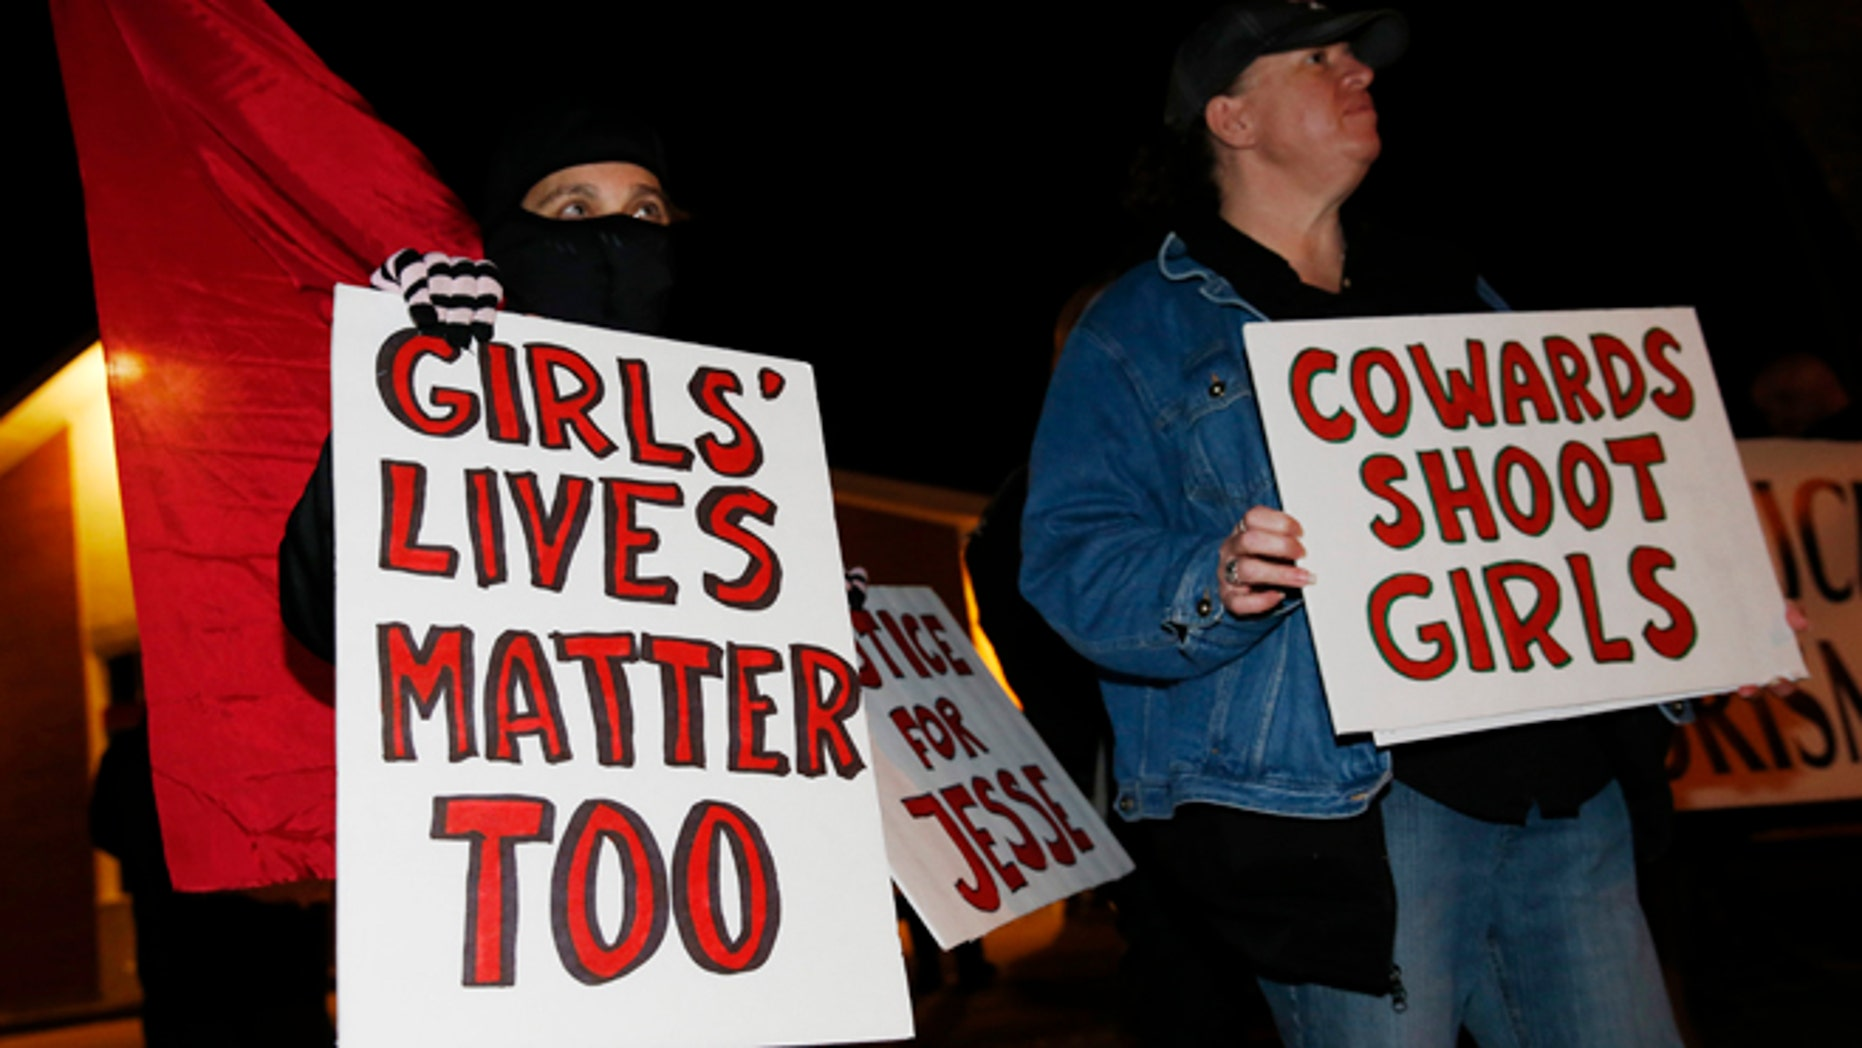 Nazzi McDonnell, left, of Colorado Springs, Colo., joins other participants in waving placards during a vigil near the scene of the early morning fatal shooting of a young woman who hit and injured a Denver Police Department officer while driving a stolen vehicle Monday, Jan. 26, 2015, in northeast Denver. (AP Photo/David Zalubowski)